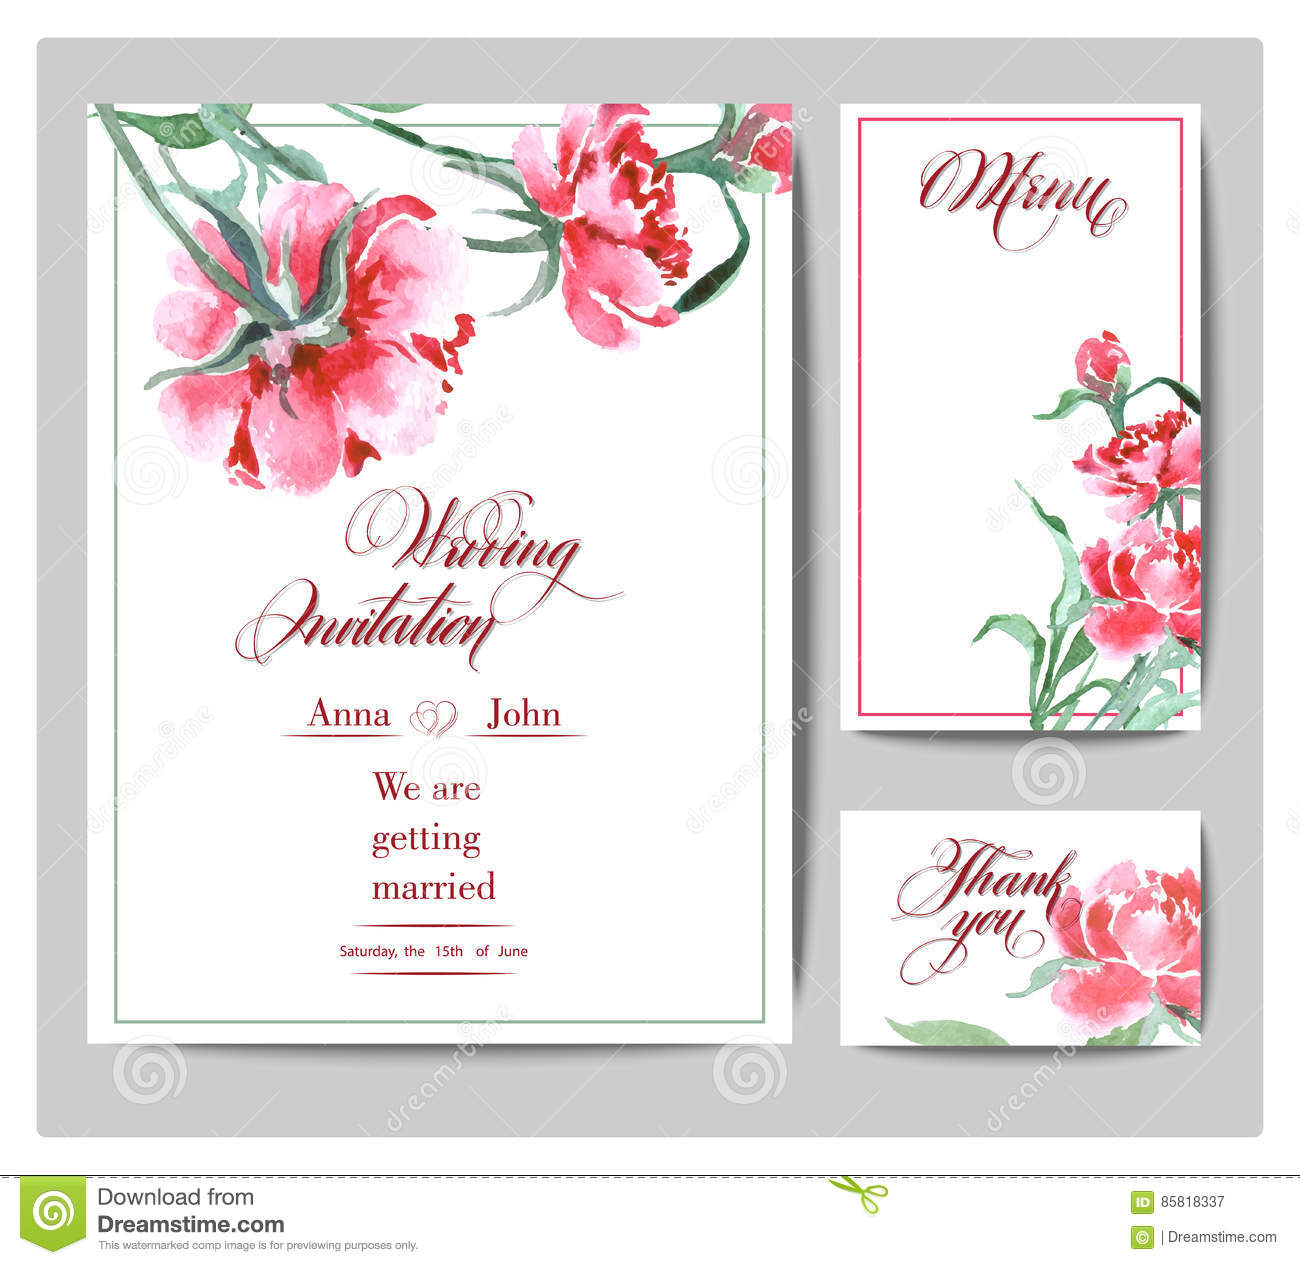 Wedding Invitation With A Watercolor Peonies. Card Use For Boarding ...